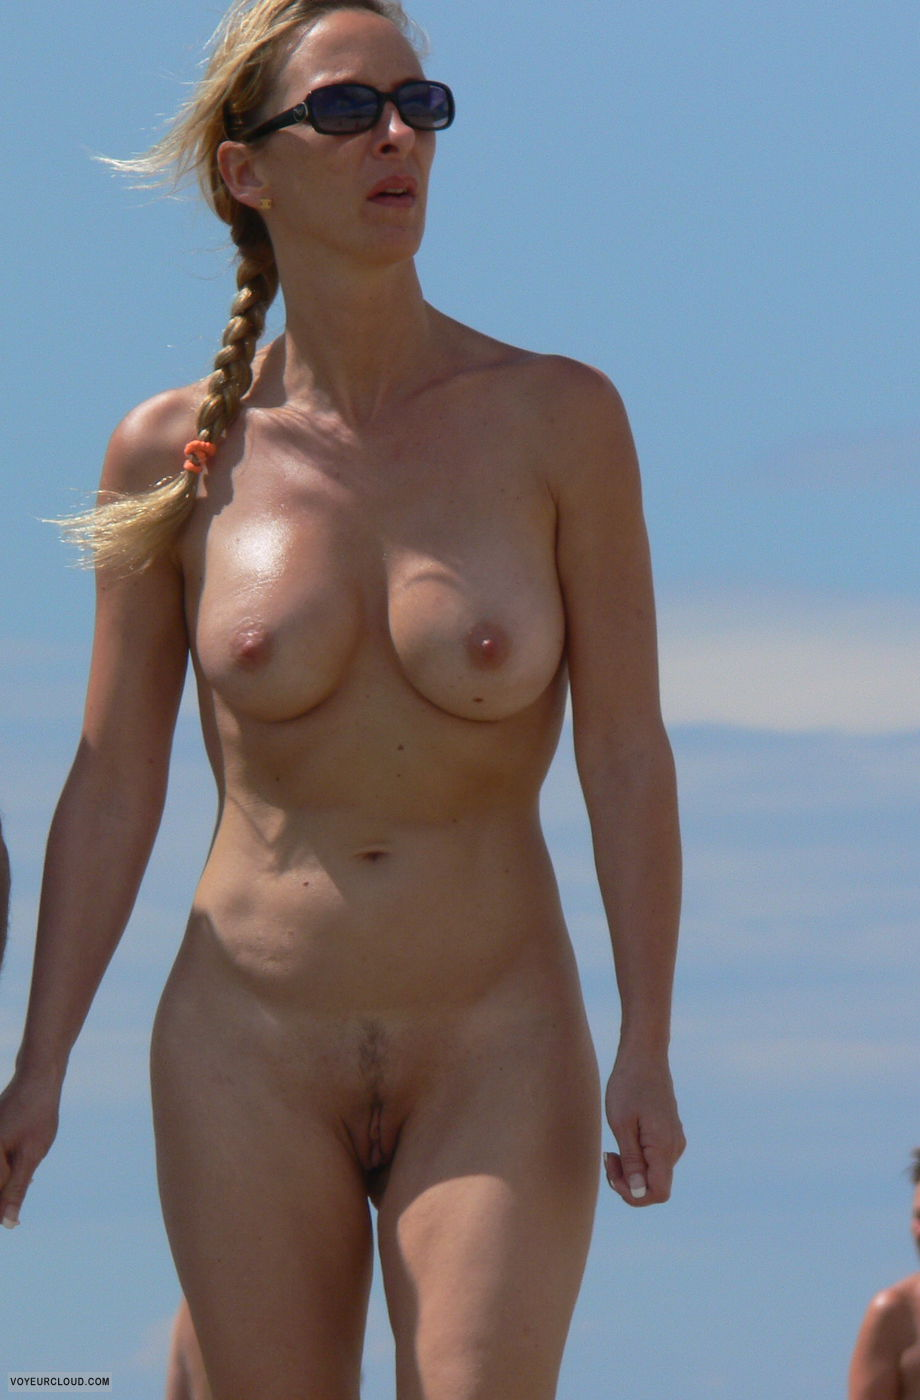 The Beach Mature Women Nude At#3